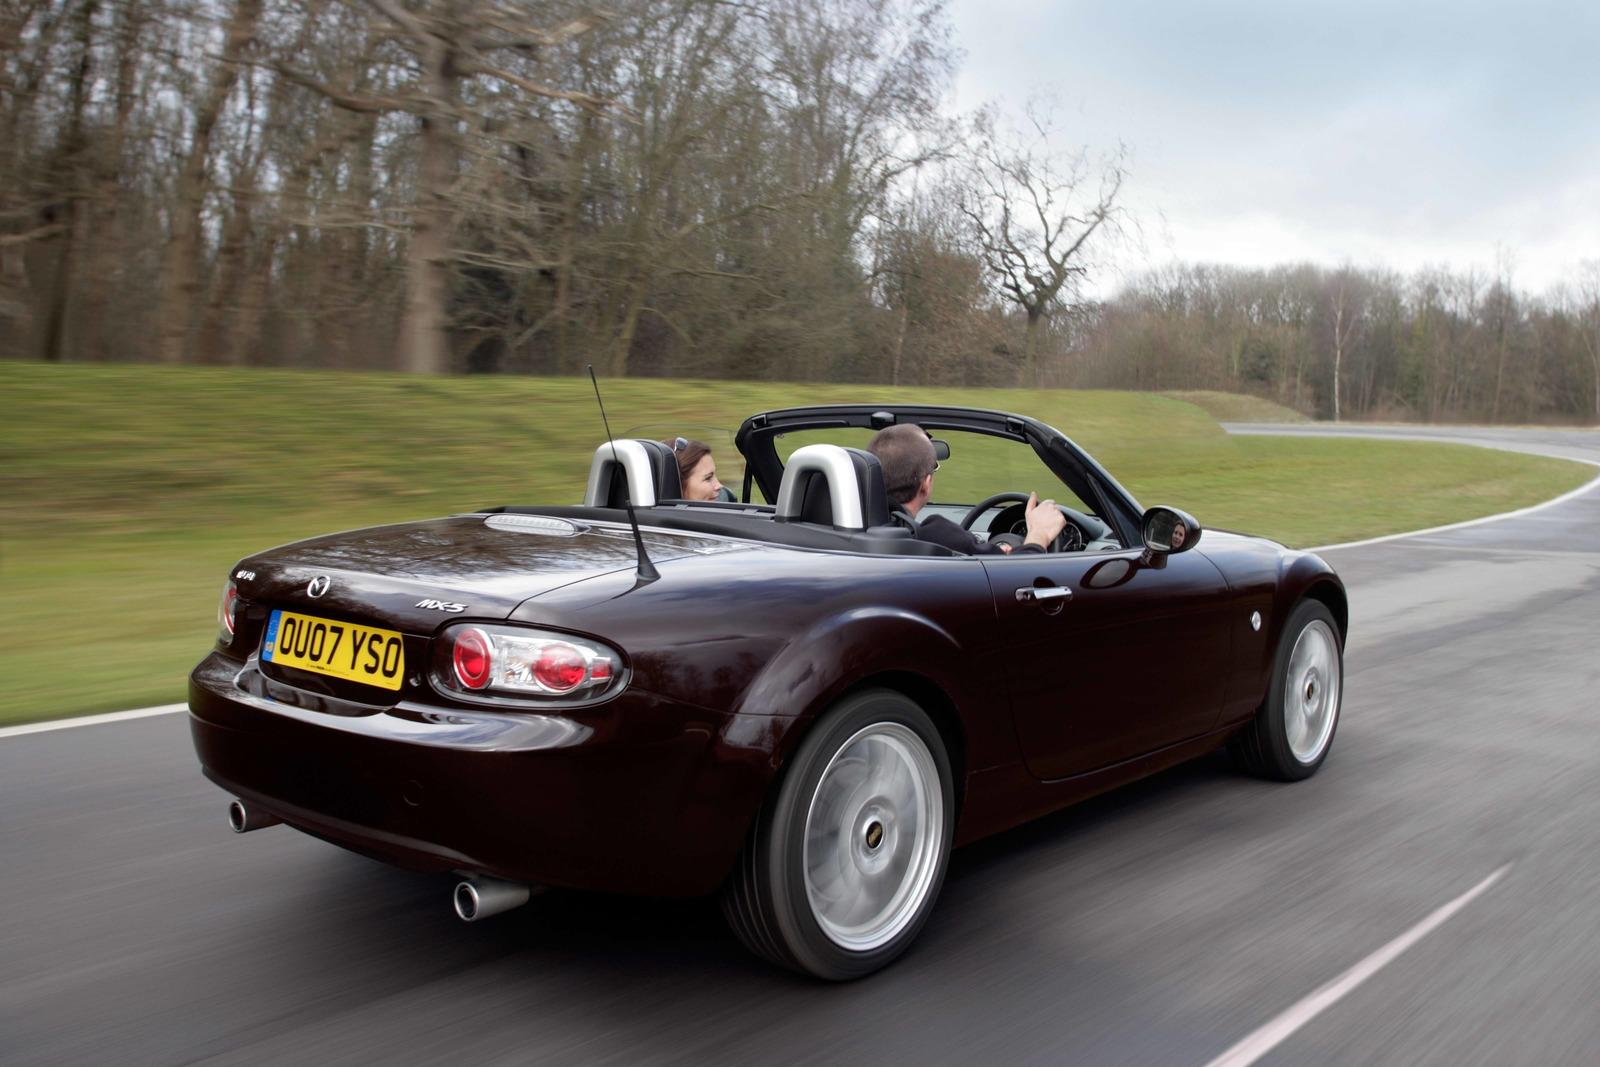 2007 mazda mx5 miata sport version picture 152117 car review top speed. Black Bedroom Furniture Sets. Home Design Ideas